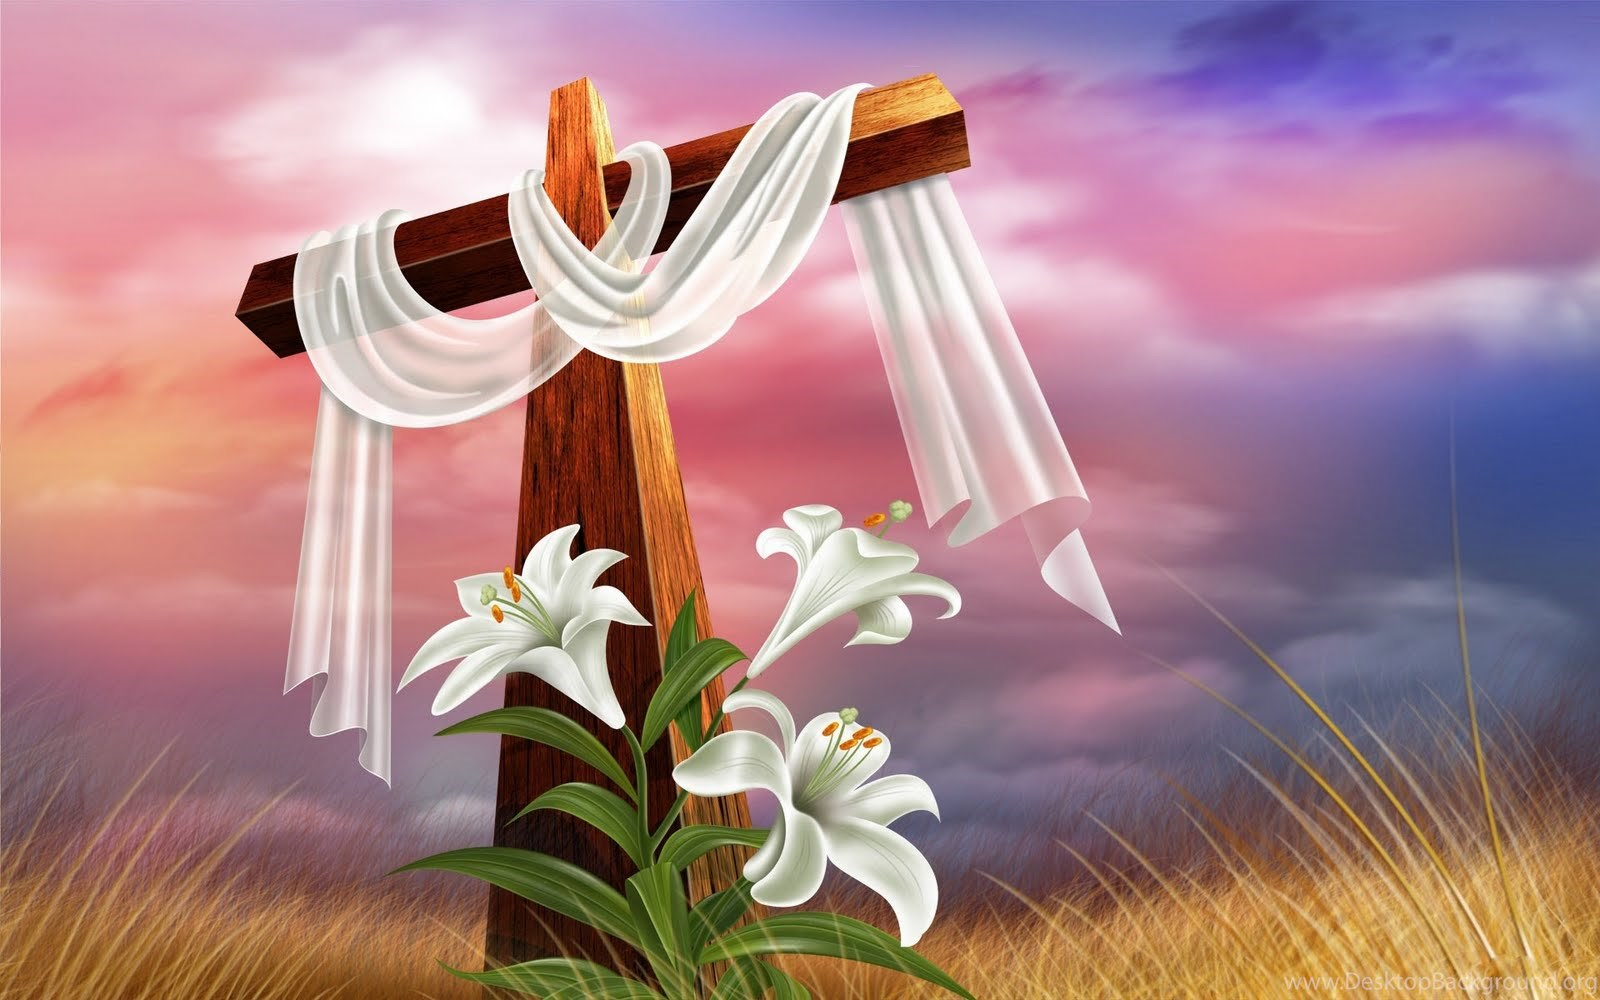 Divine Love Of Our Lord Jesus Christ Wallpapers Christian ...